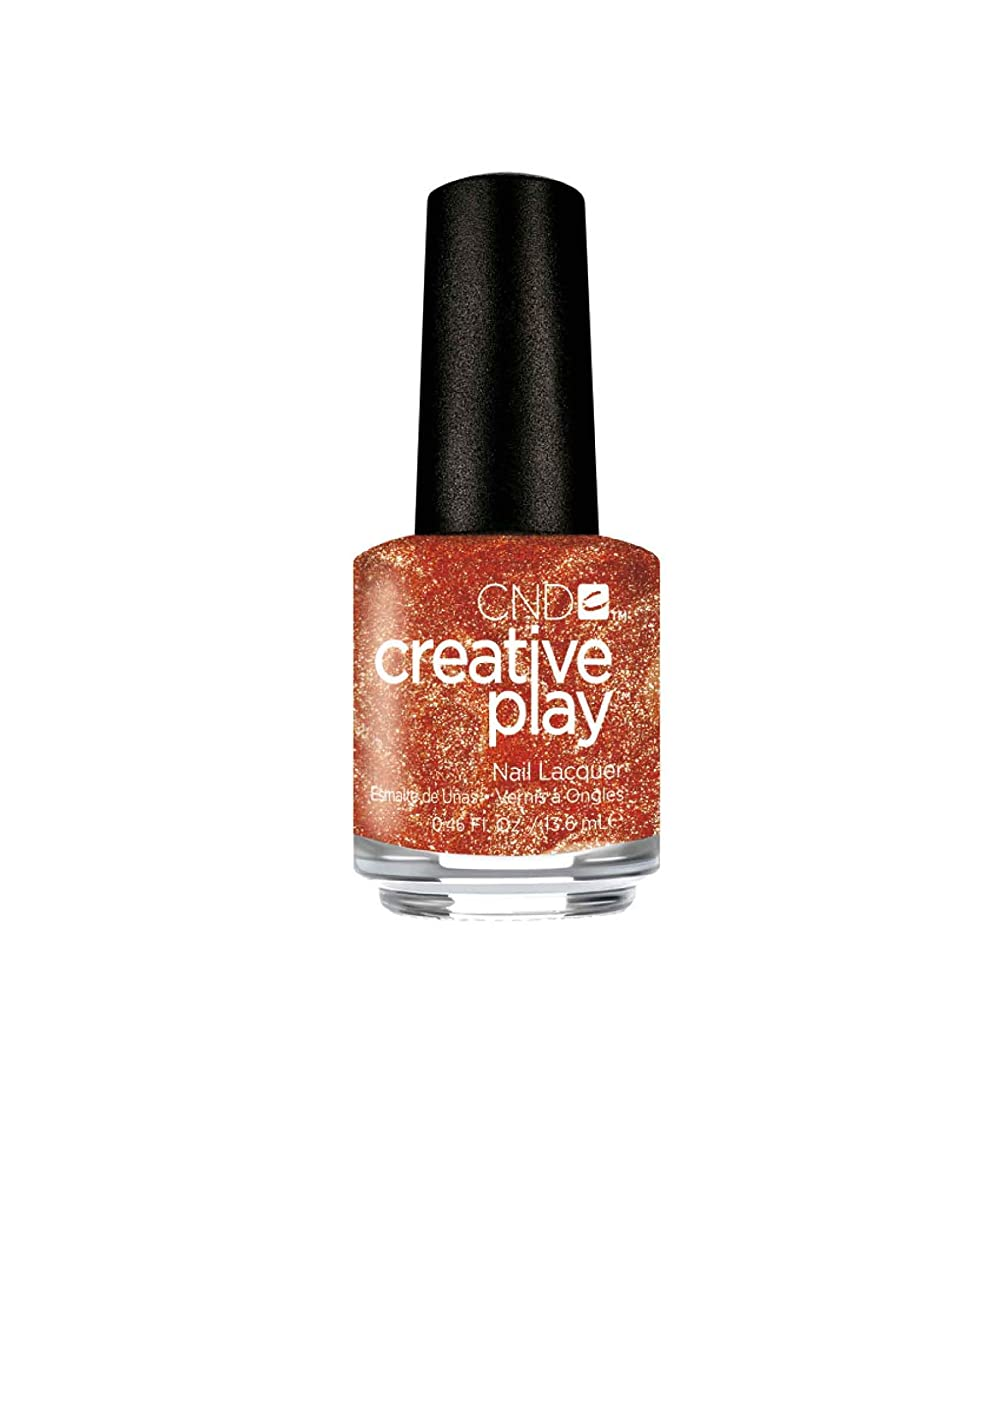 延期する漏斗換気するCND Creative Play Lacquer - Lost in Spice - 0.46oz / 13.6ml